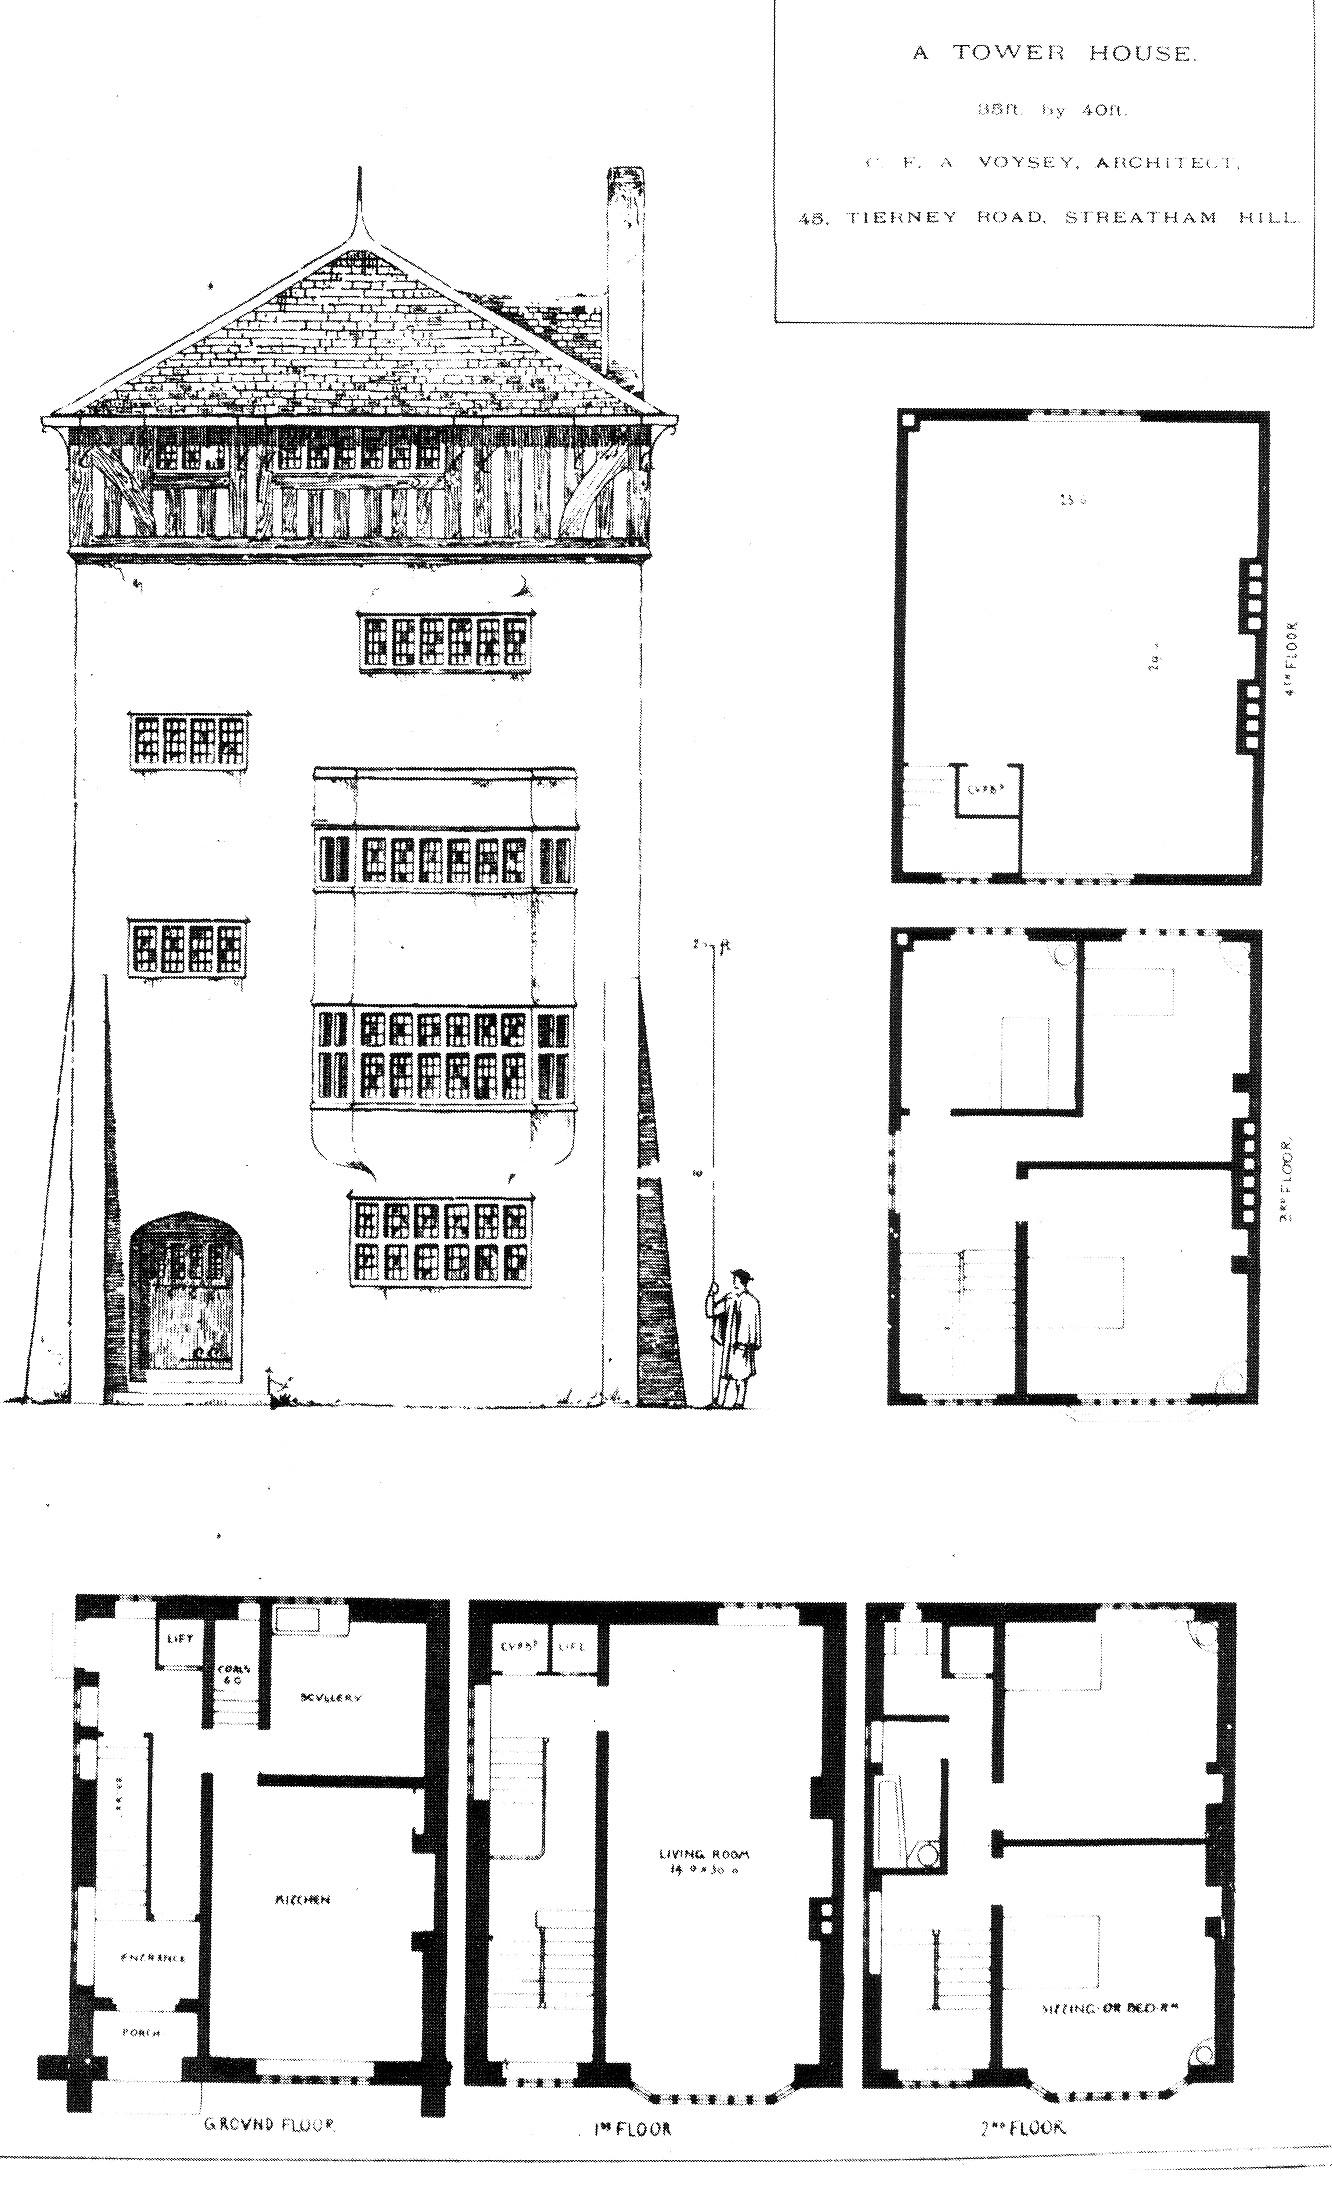 1889 tower house streatham hill for Building plans images